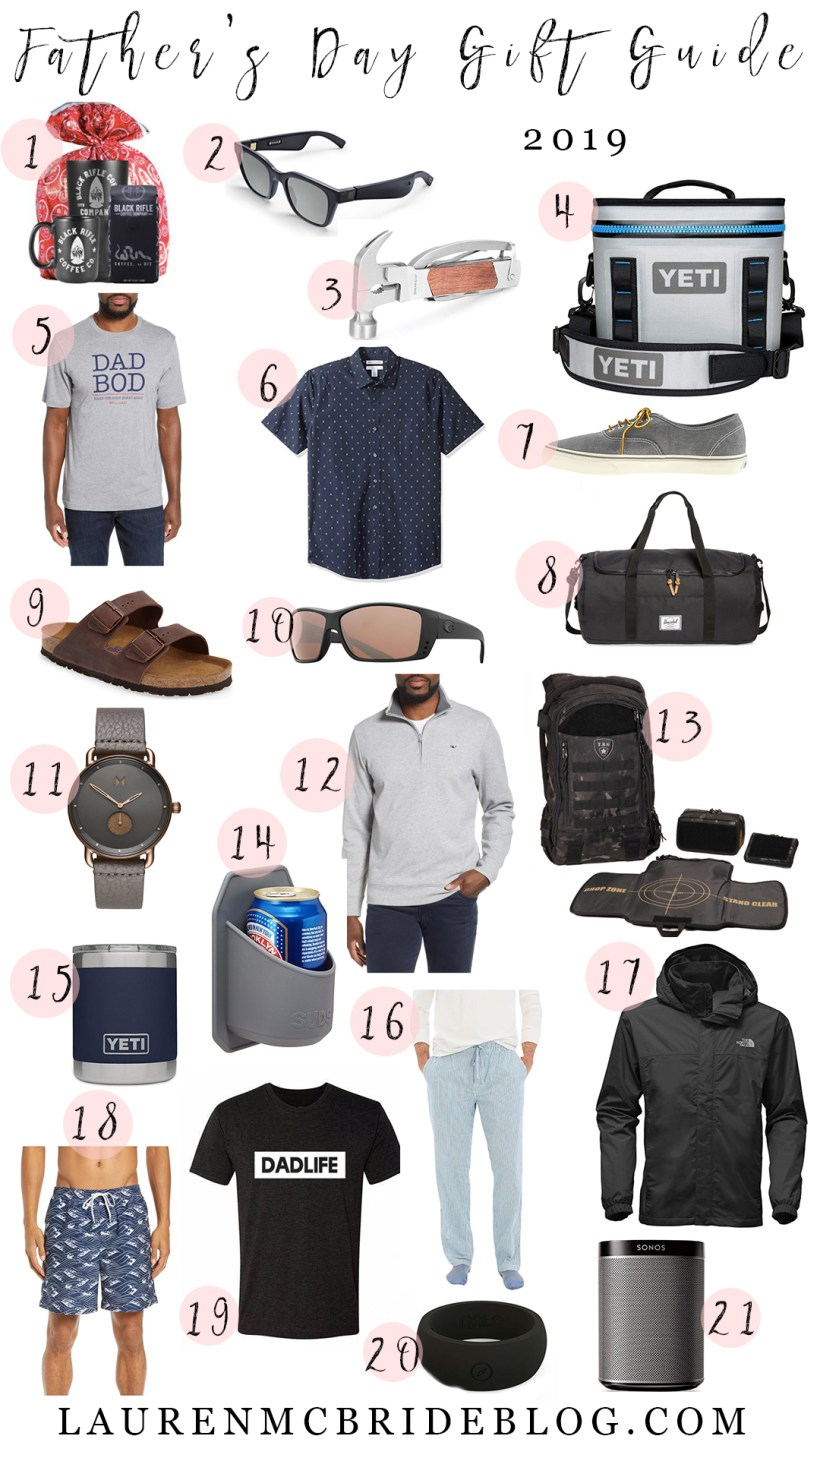 Connecticut life and style blogger Lauren McBride shares her Father's Day Gift Guide for 2019 featuring a variety of items at difference price points.